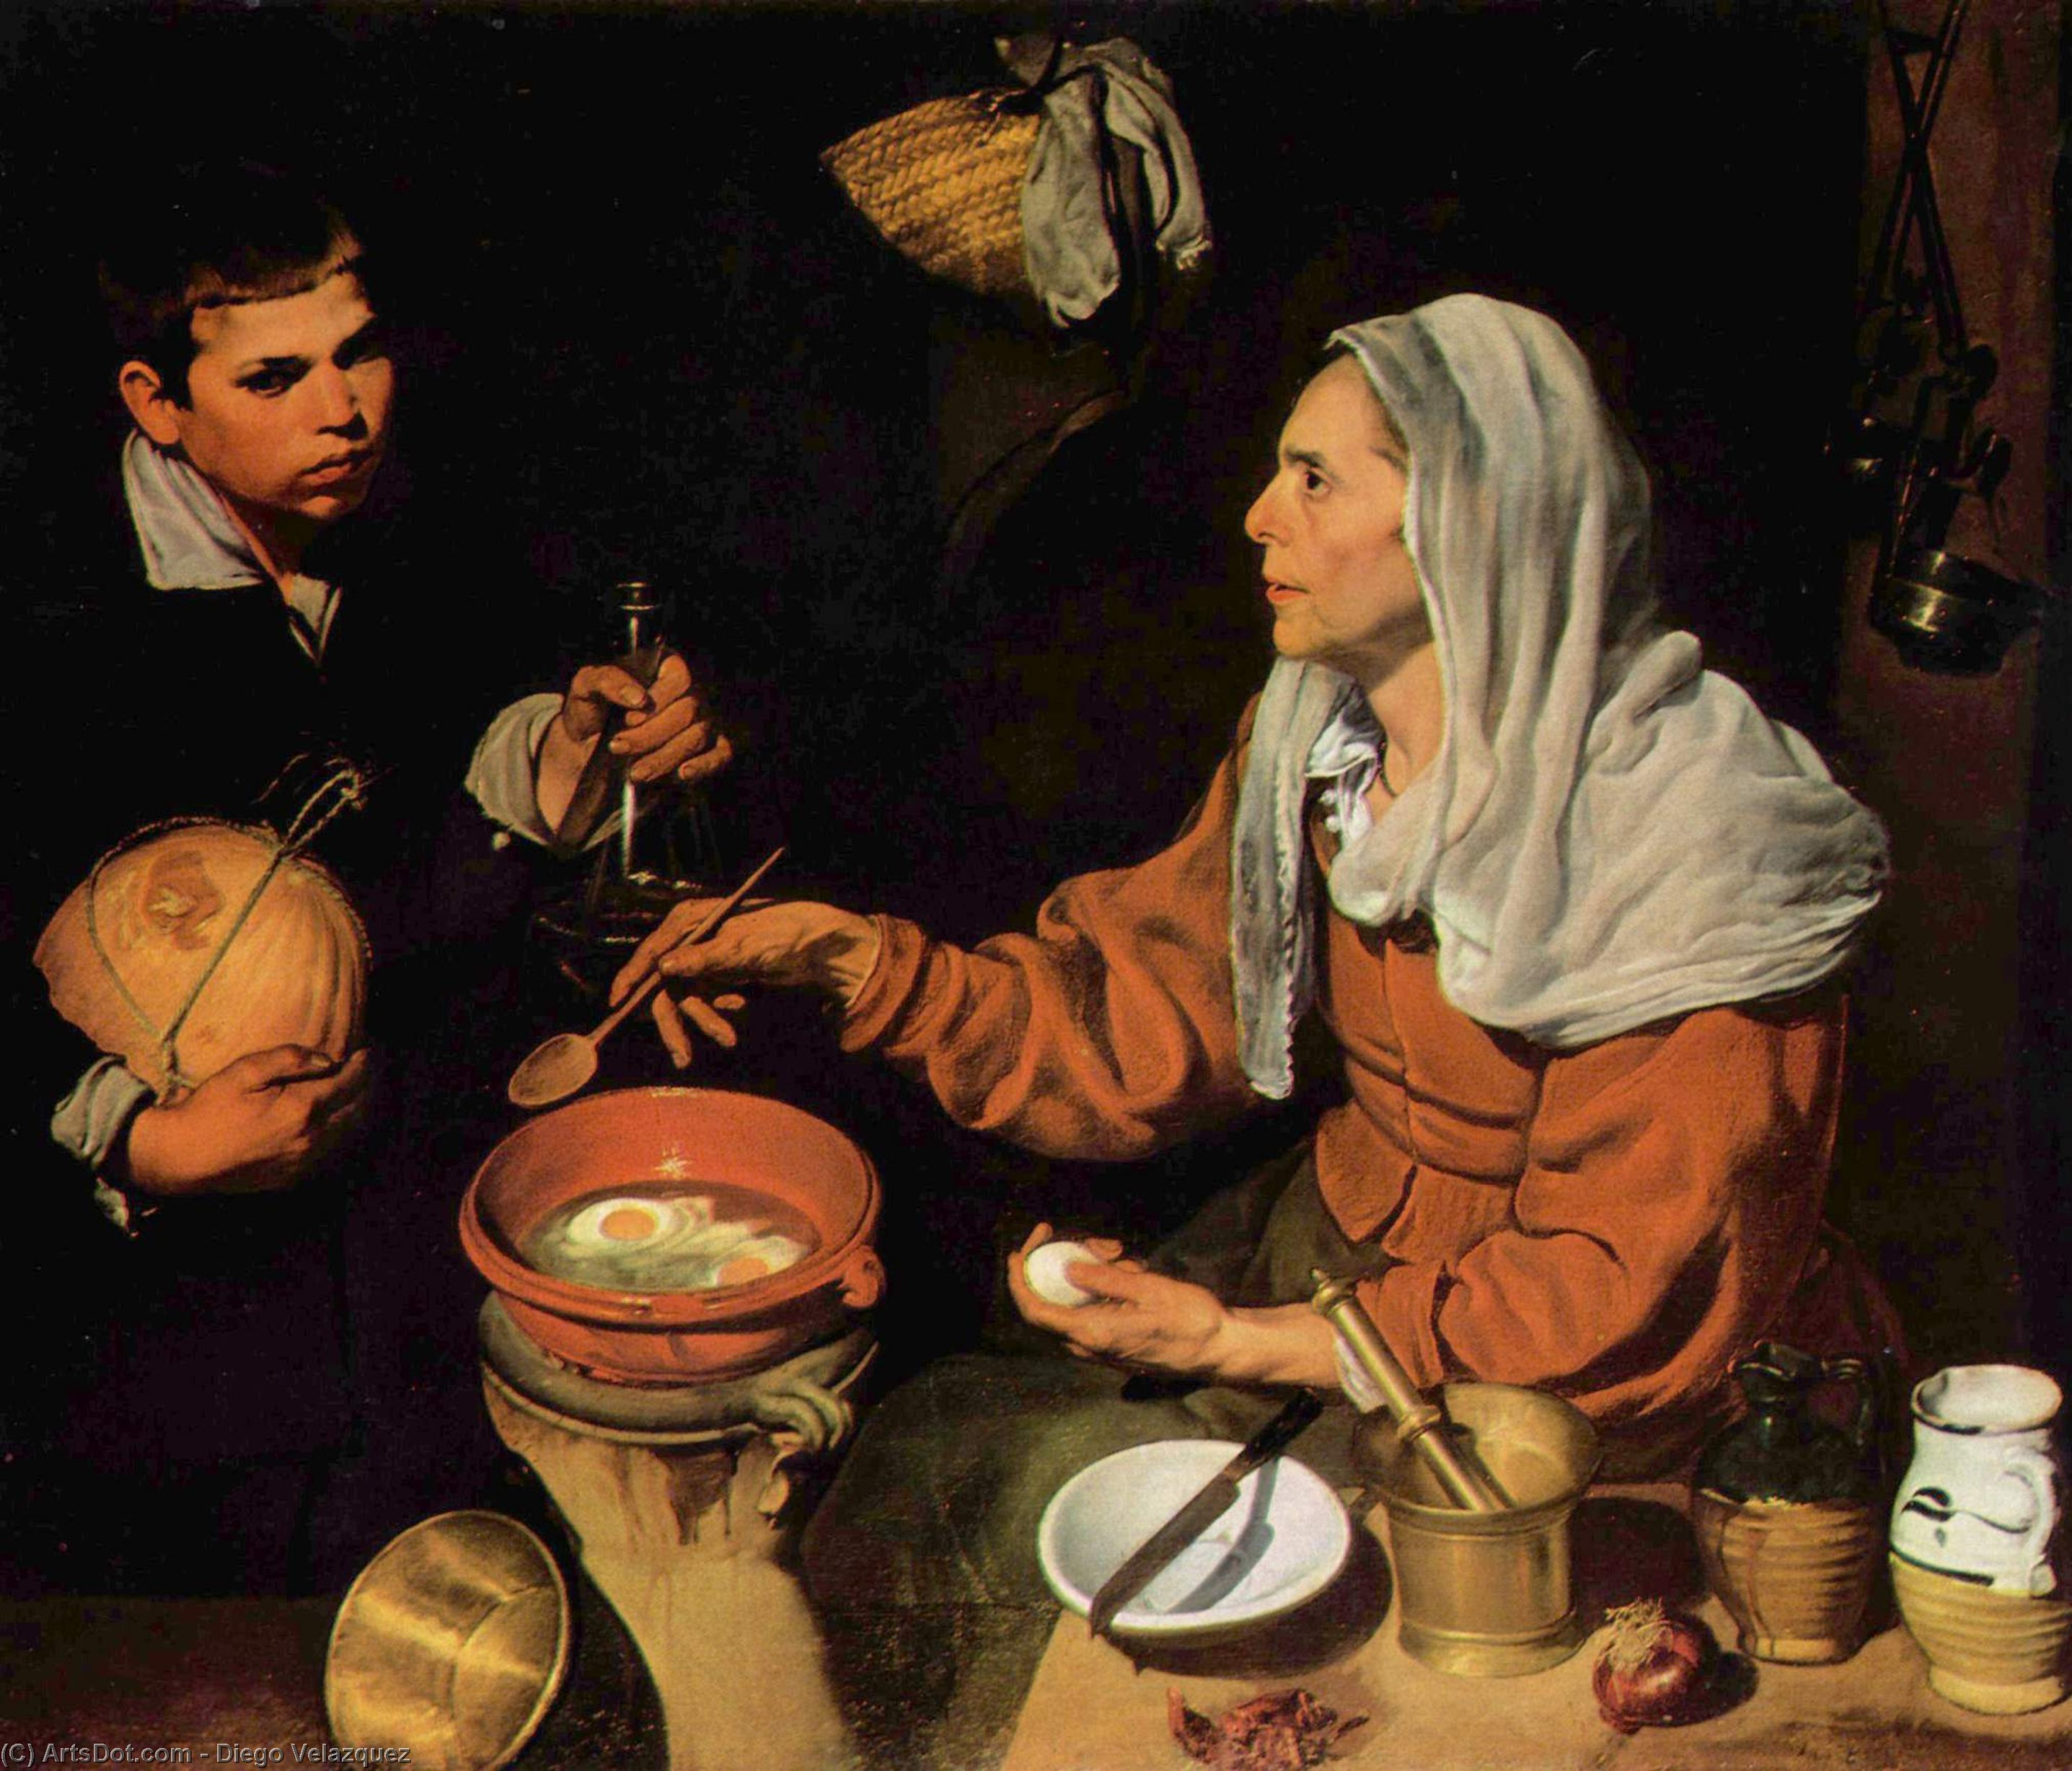 An Old Woman Cooking Eggs, Oil On Canvas by Diego Velazquez (1599-1660, Spain)